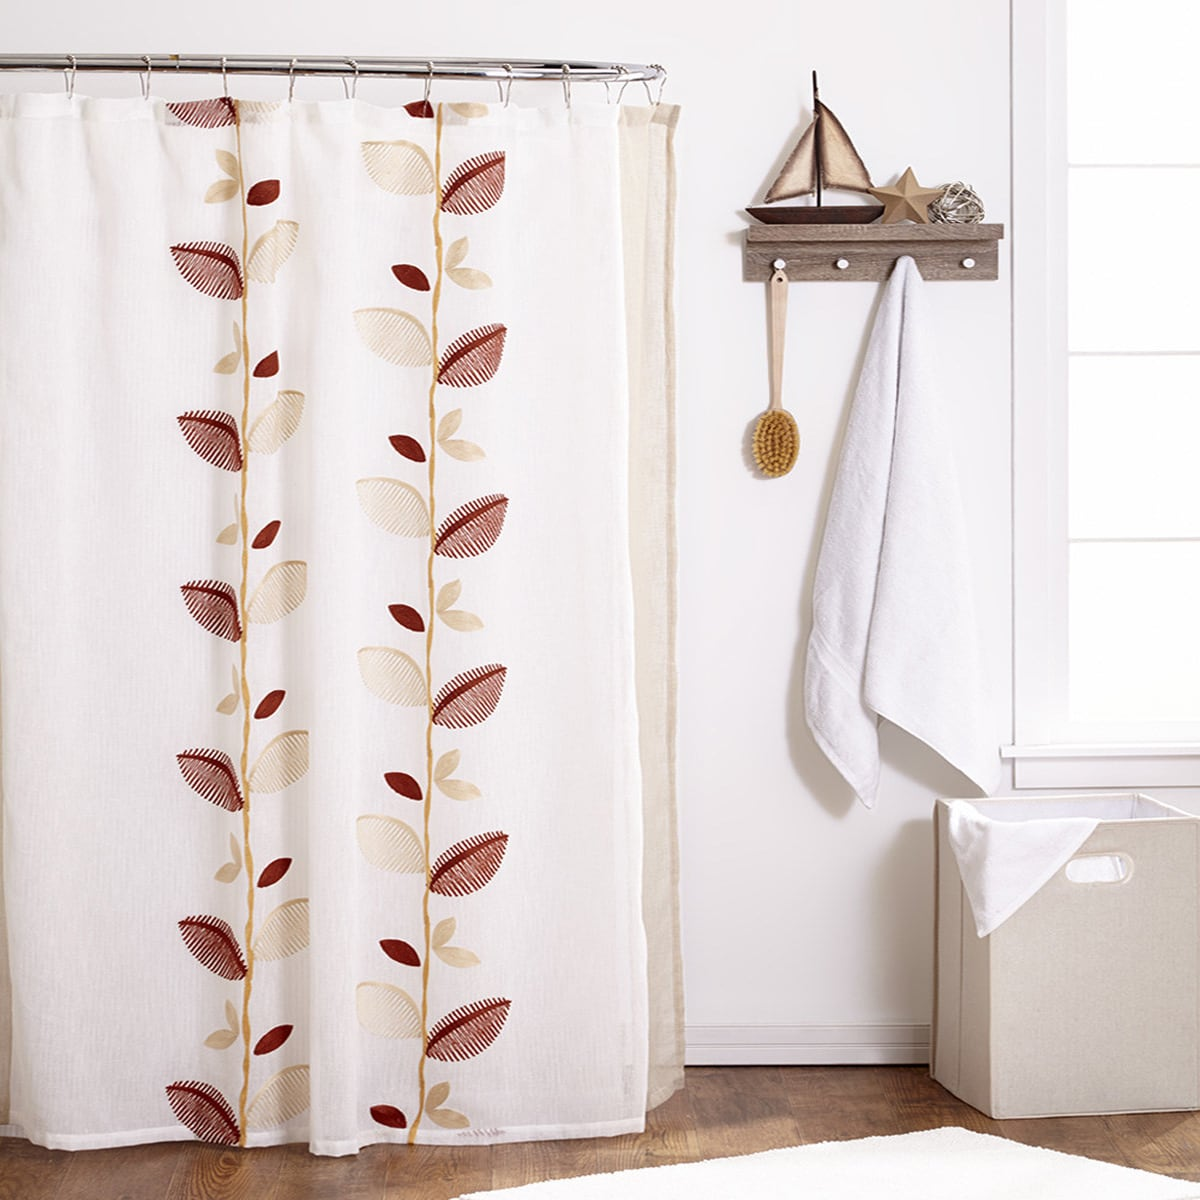 bed bath n more Embroidered Ivory Linen Leaf Shower Curtain and Hooks Set or Separates